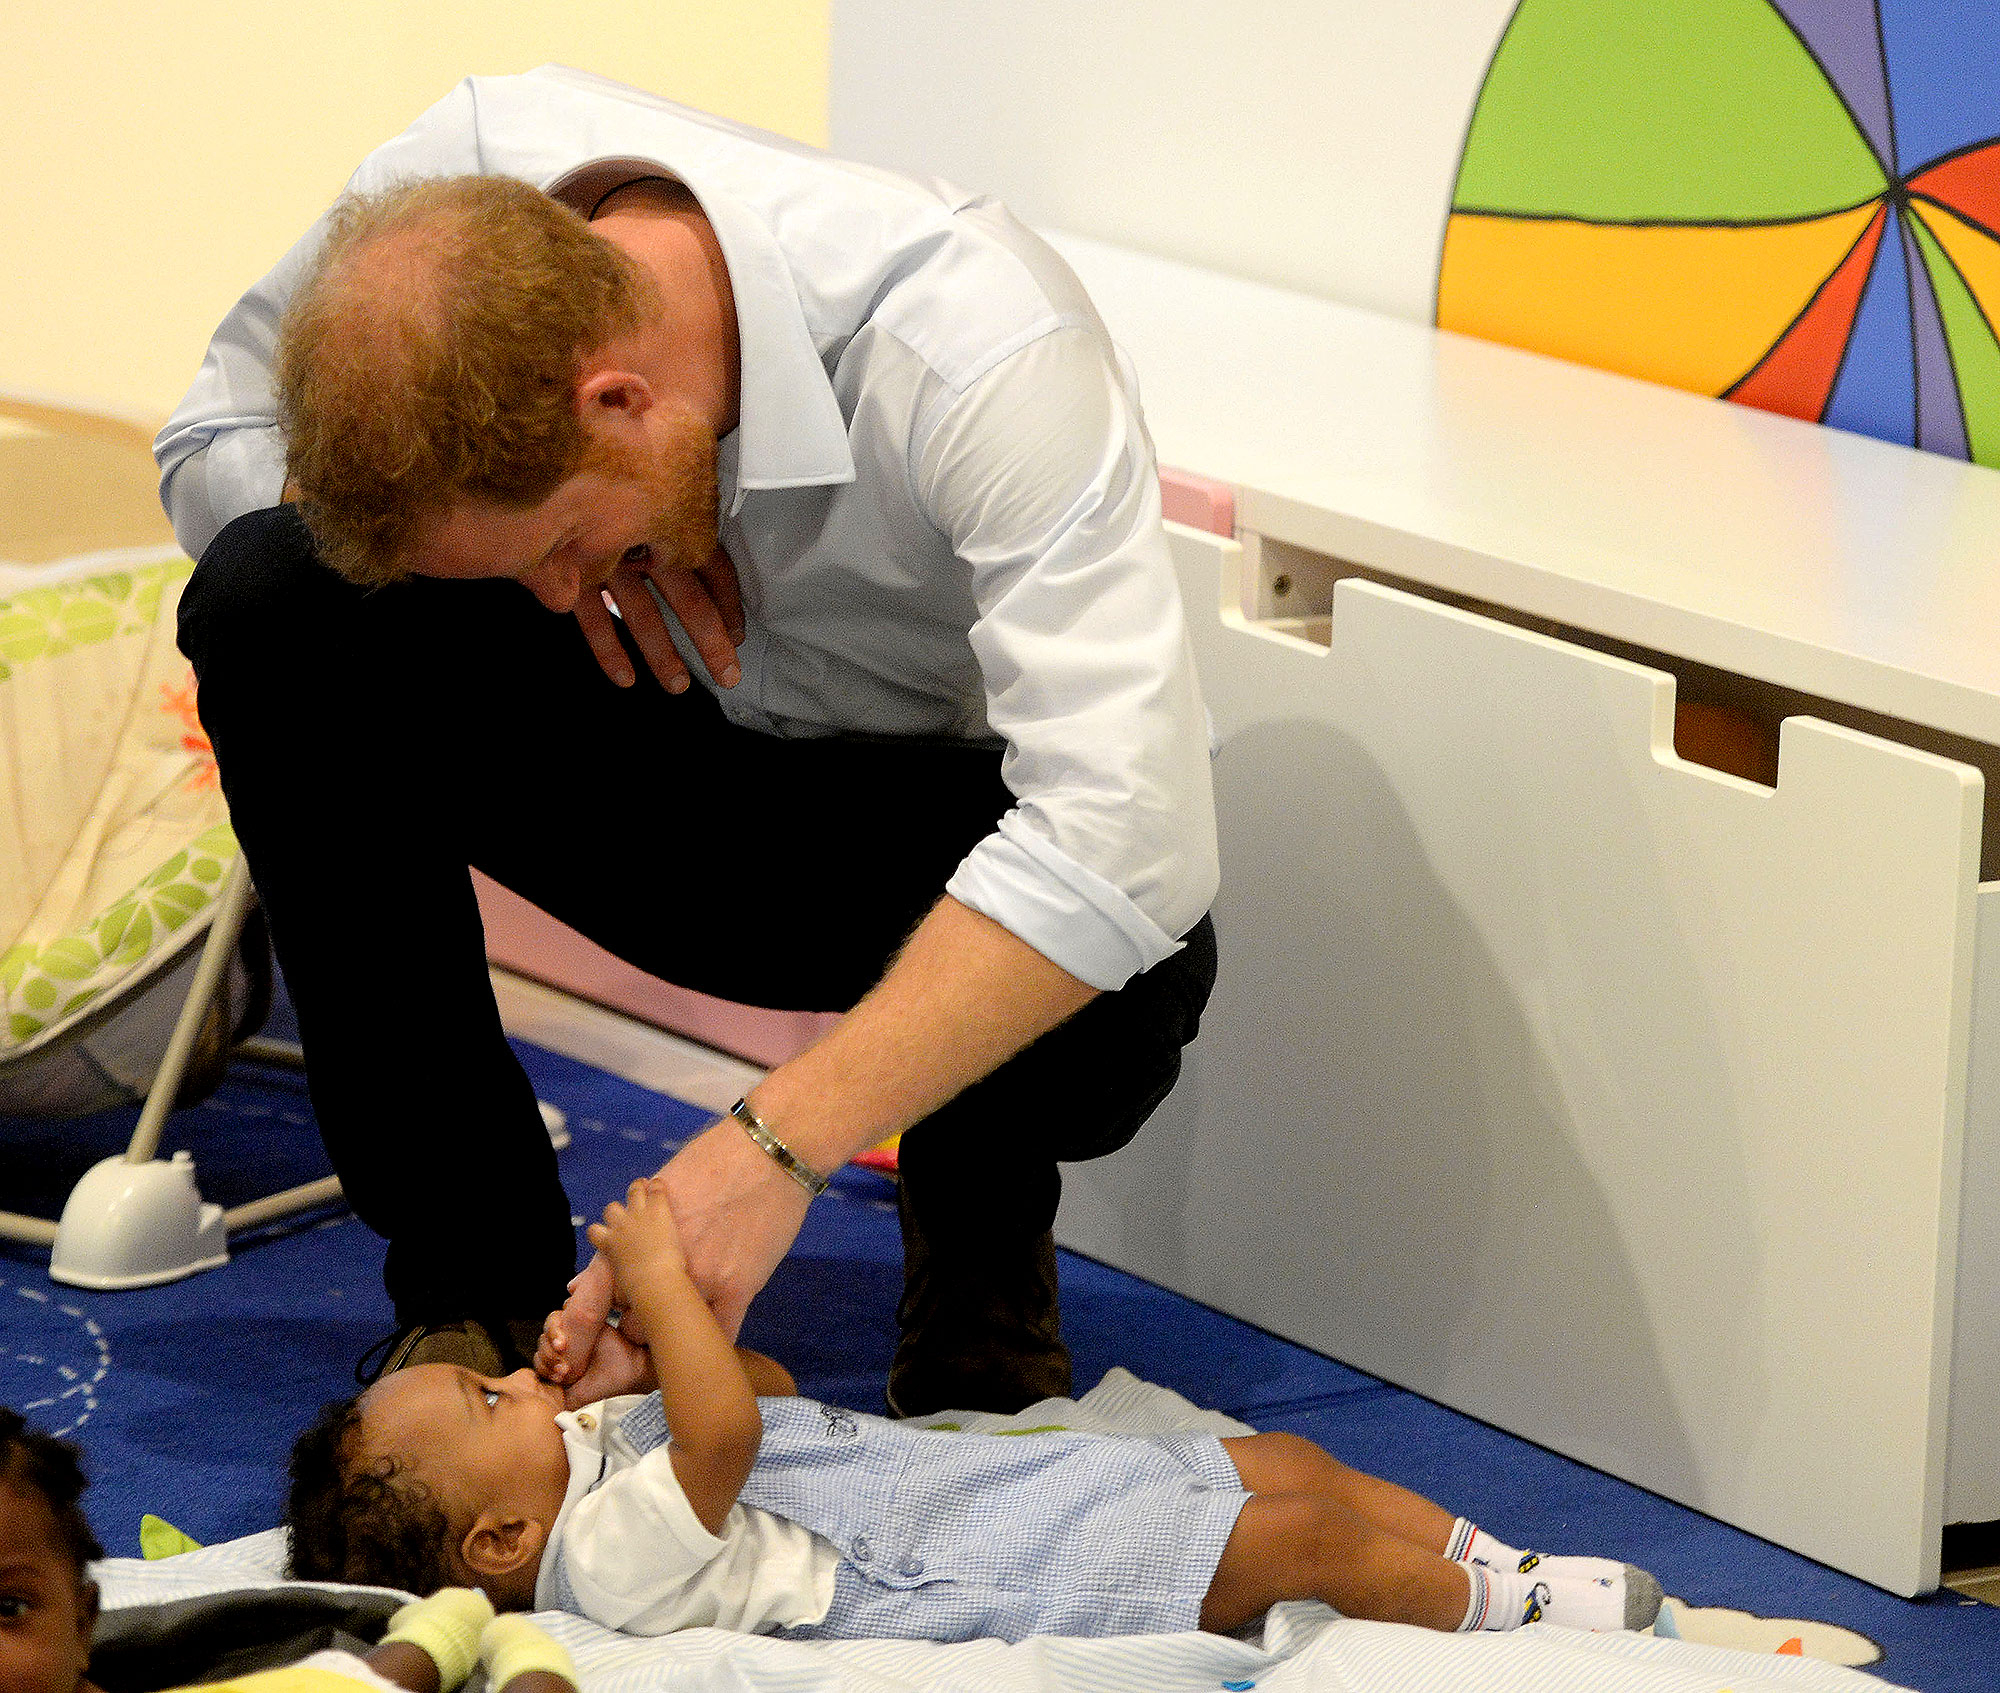 Prince Harry - The former Air Corps soldier befriended a baby at Barbados' Nightingale Children's Home in December 2016.